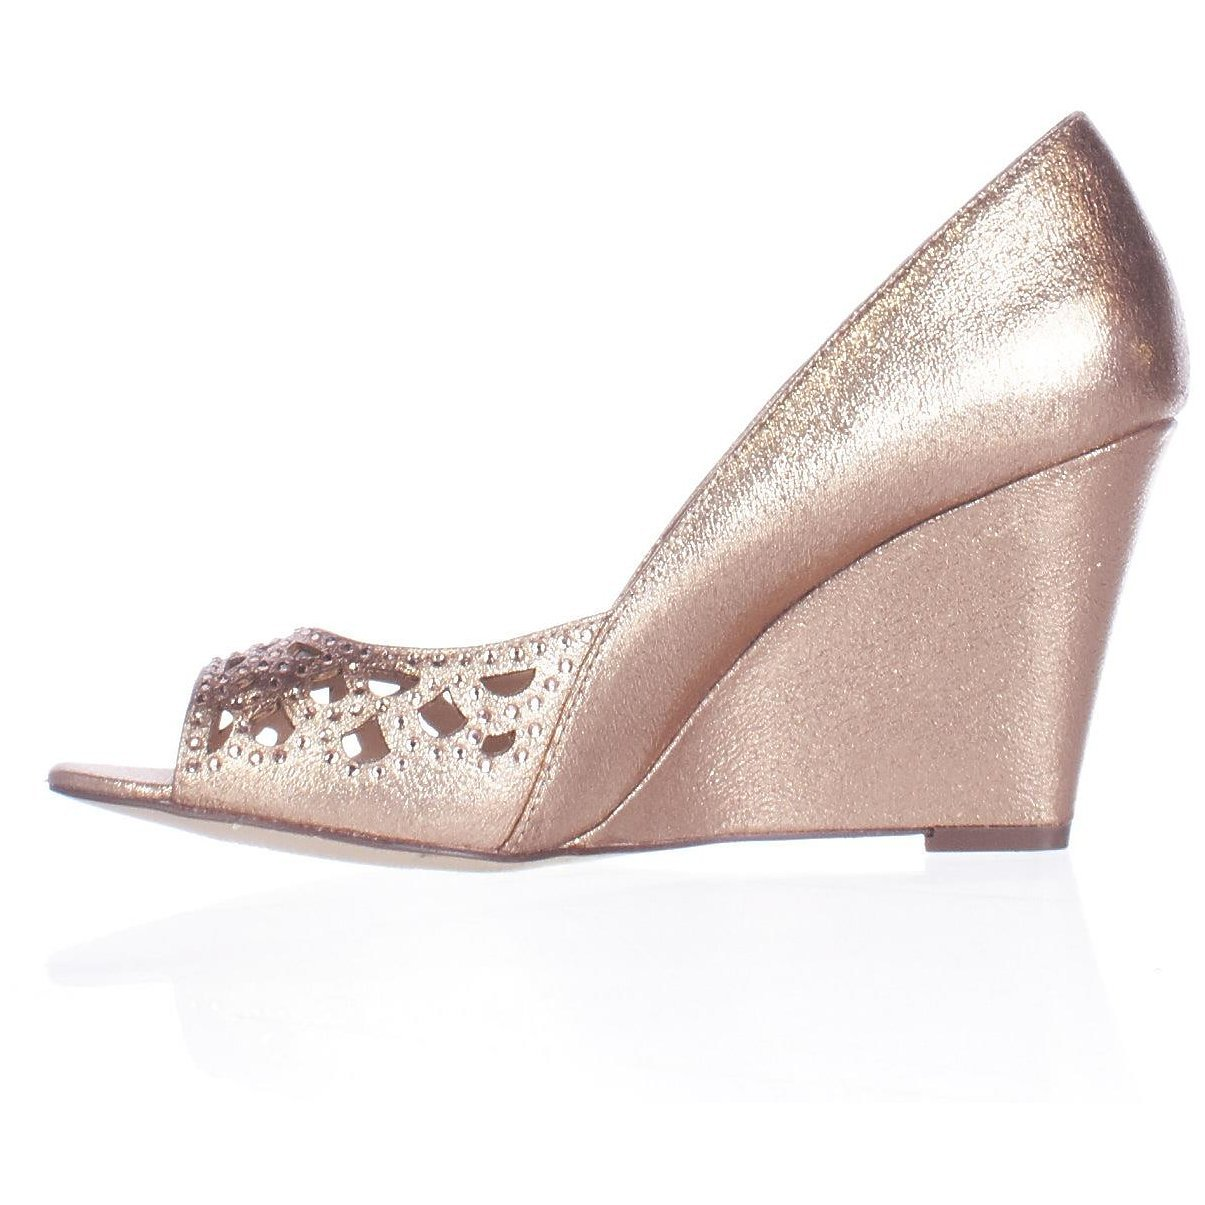 Style & Co. Womens Cathiee Round Toe Wedge Pumps, Coppertone, Size 8.5